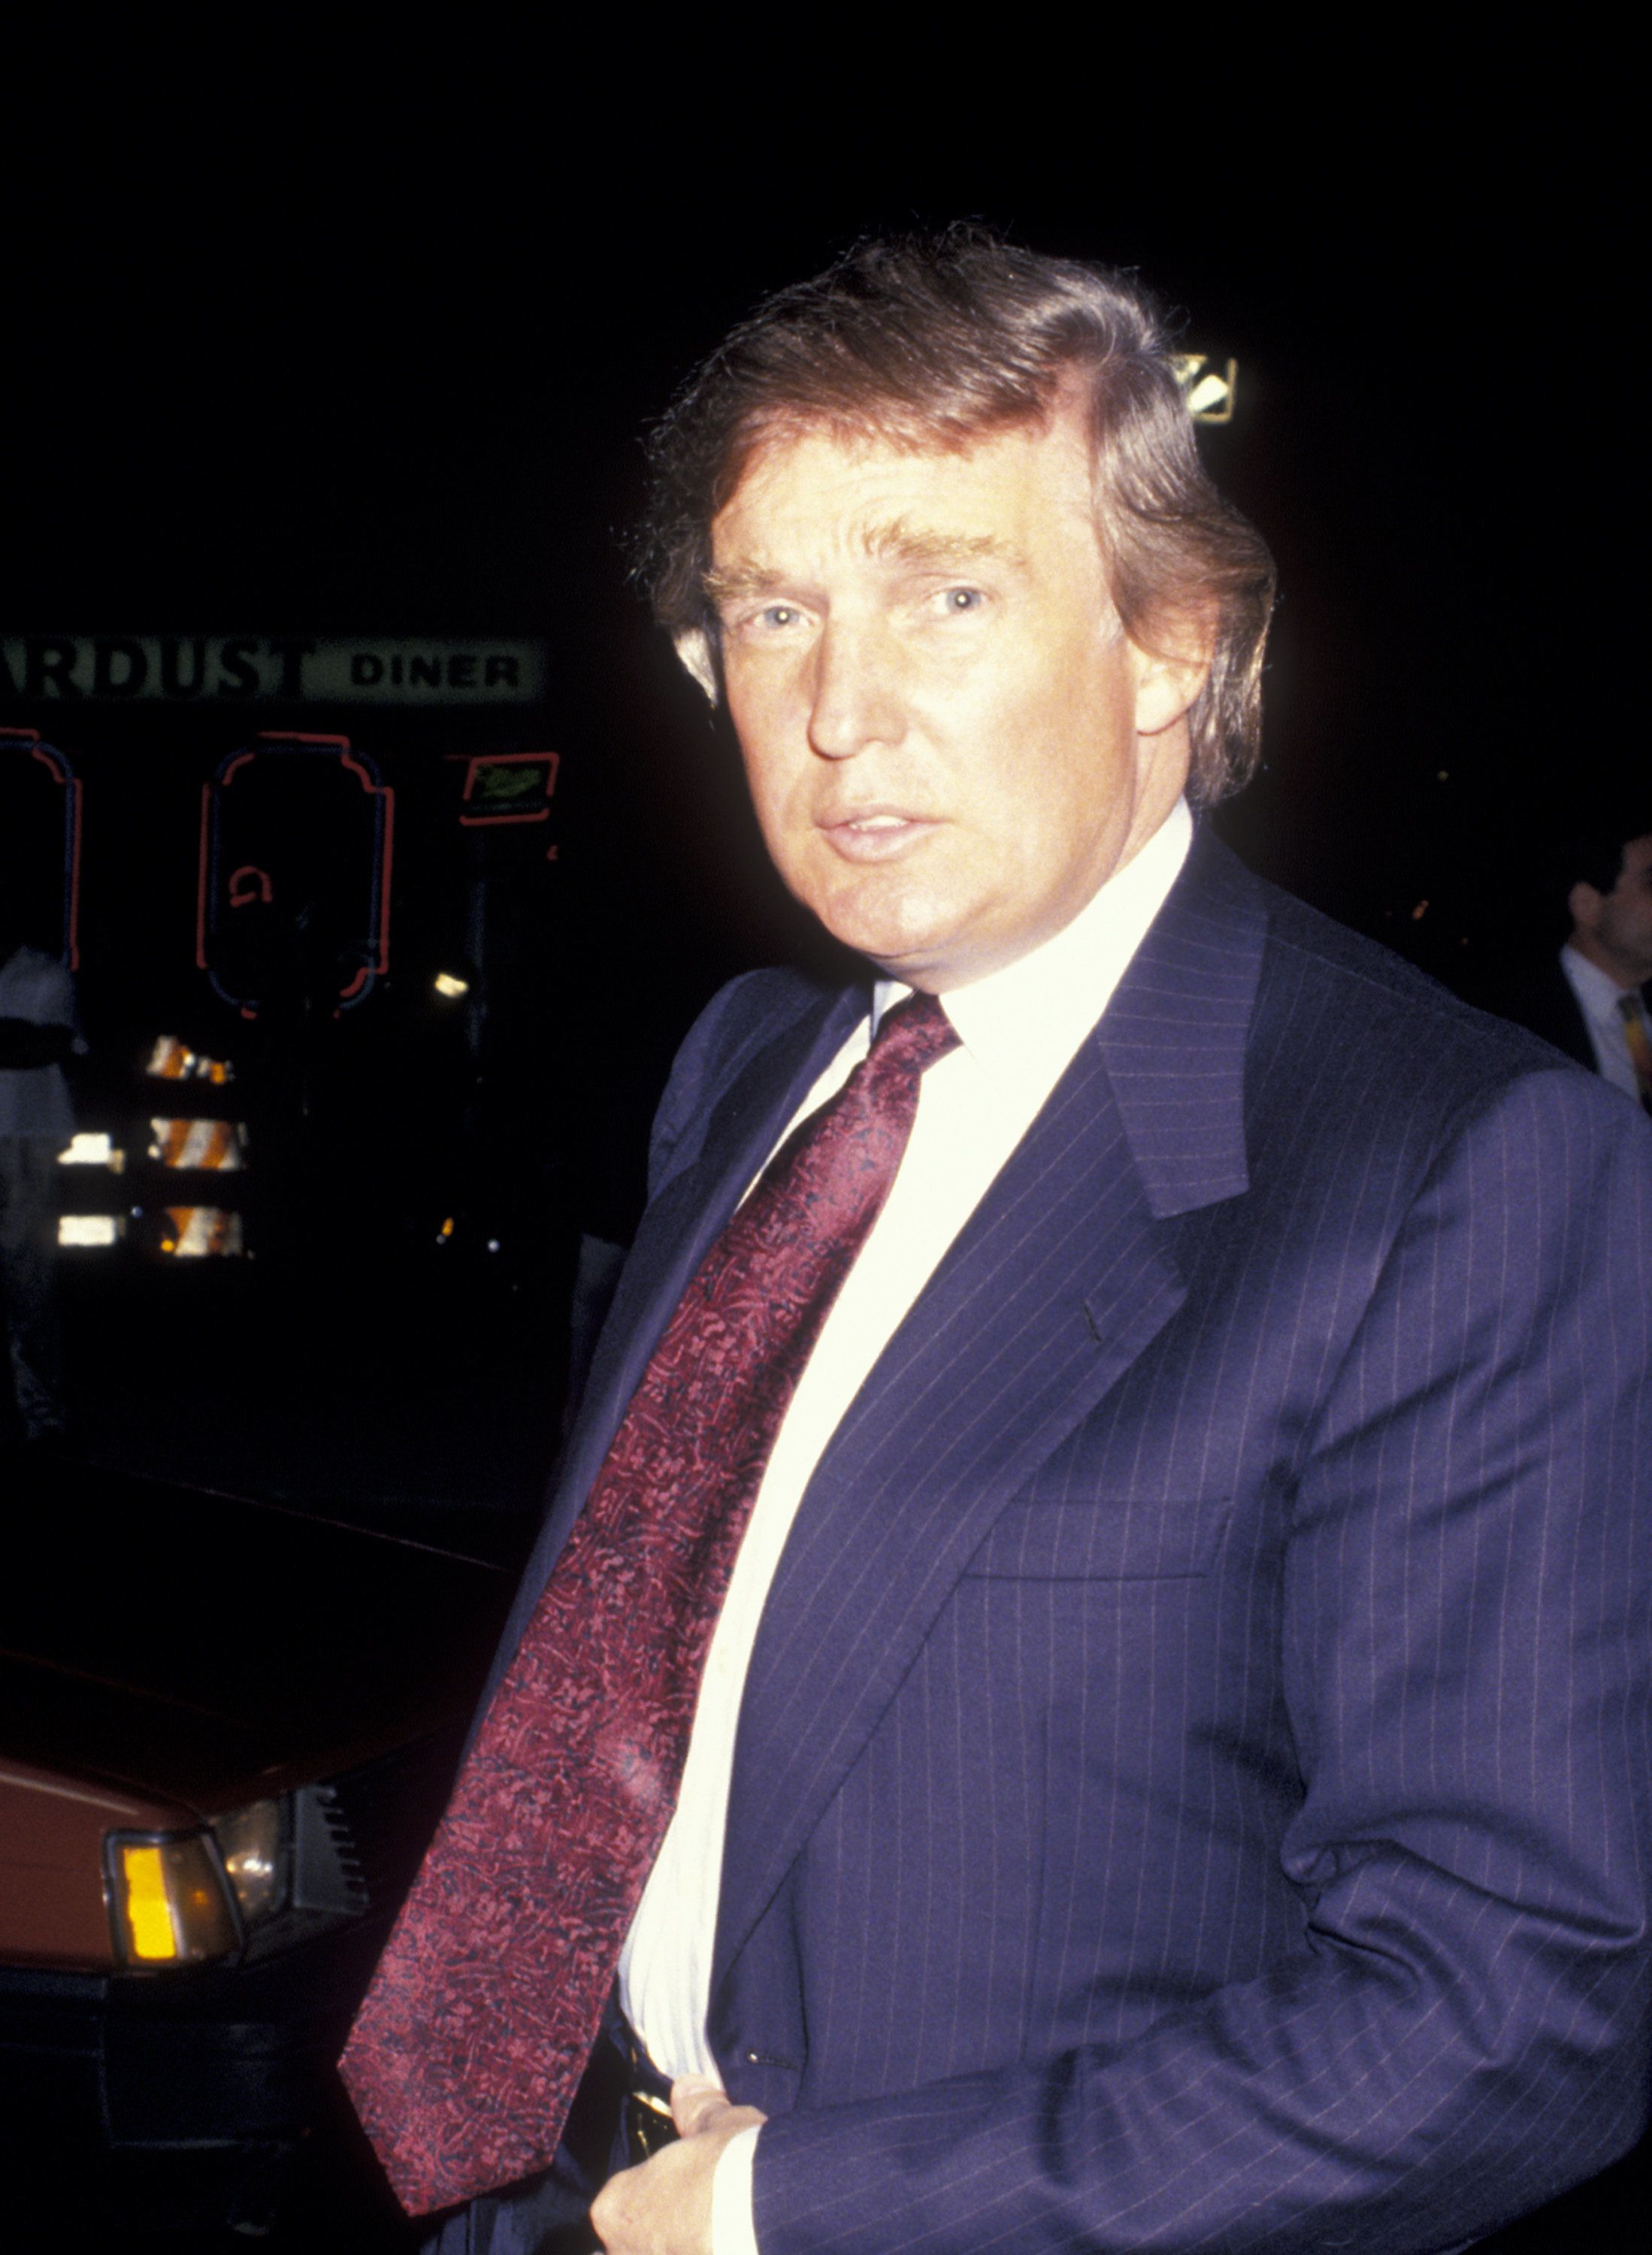 Donald Trump in New York City in October 1993, just months after he allegedly sexually assaulted make-up artist Jill Harth.